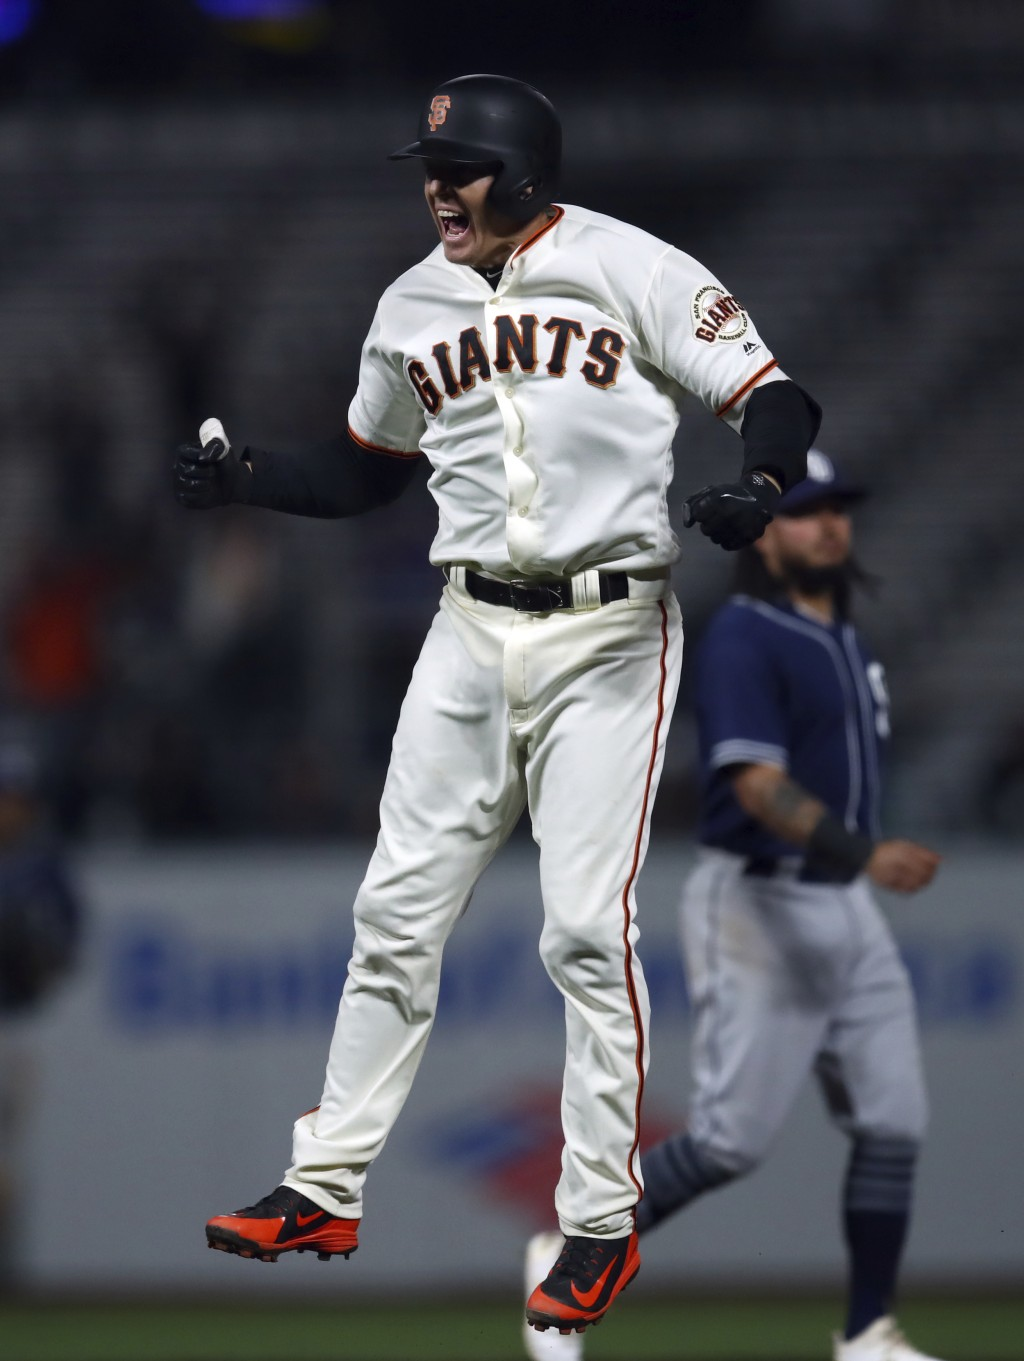 San Francisco Giants' Nick Hundley celebrates after making the game-winning hit against the San Diego Padres in the ninth inning of a baseball game, M...